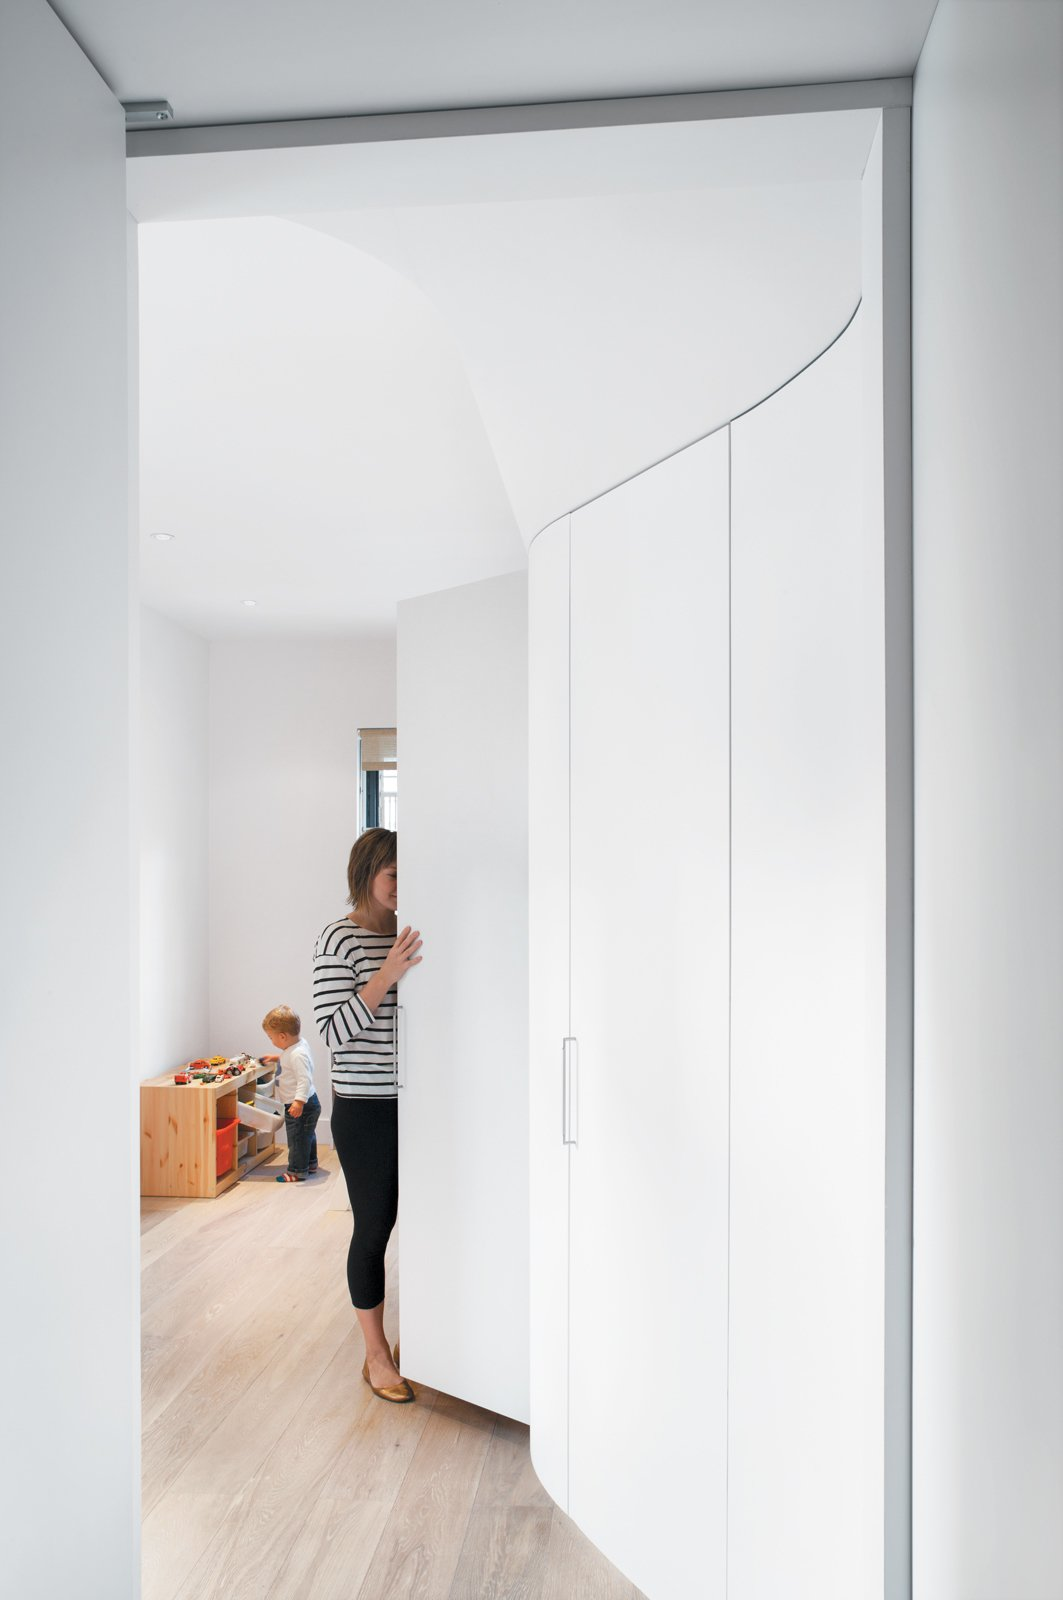 """Their parents' seldom-needed stuff (luggage, winter clothes) is stashed in the higher cabinets. """"Believe it or not, we have empty cabinets,"""" says Nikolova. """"There's space for everything.""""  Storage Solutions: 7 Hidden Closets by Diana Budds from All Together Now"""